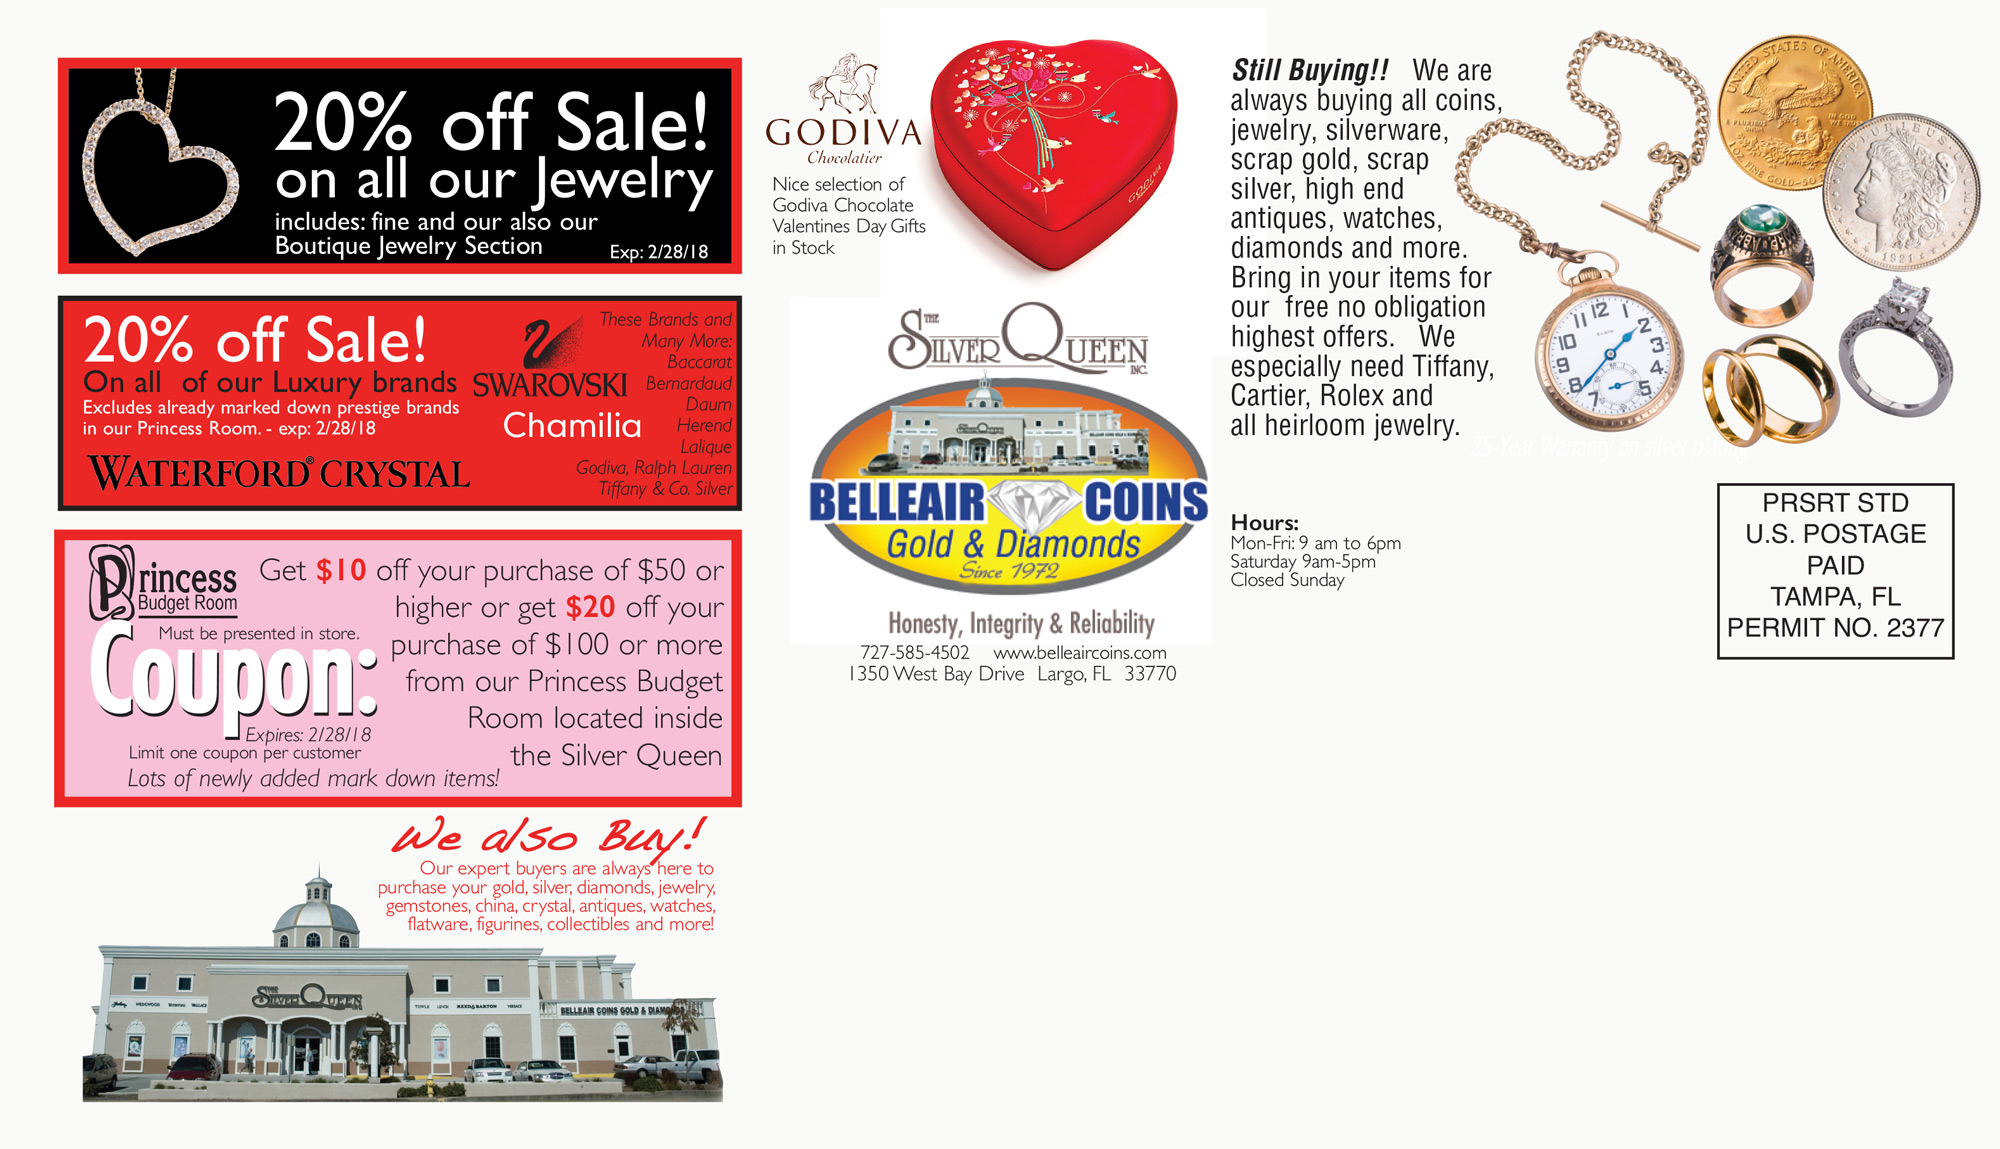 d jewellery discount off day valentines hawaiian jewelry gold website hawaii valentine sale s coupon entire